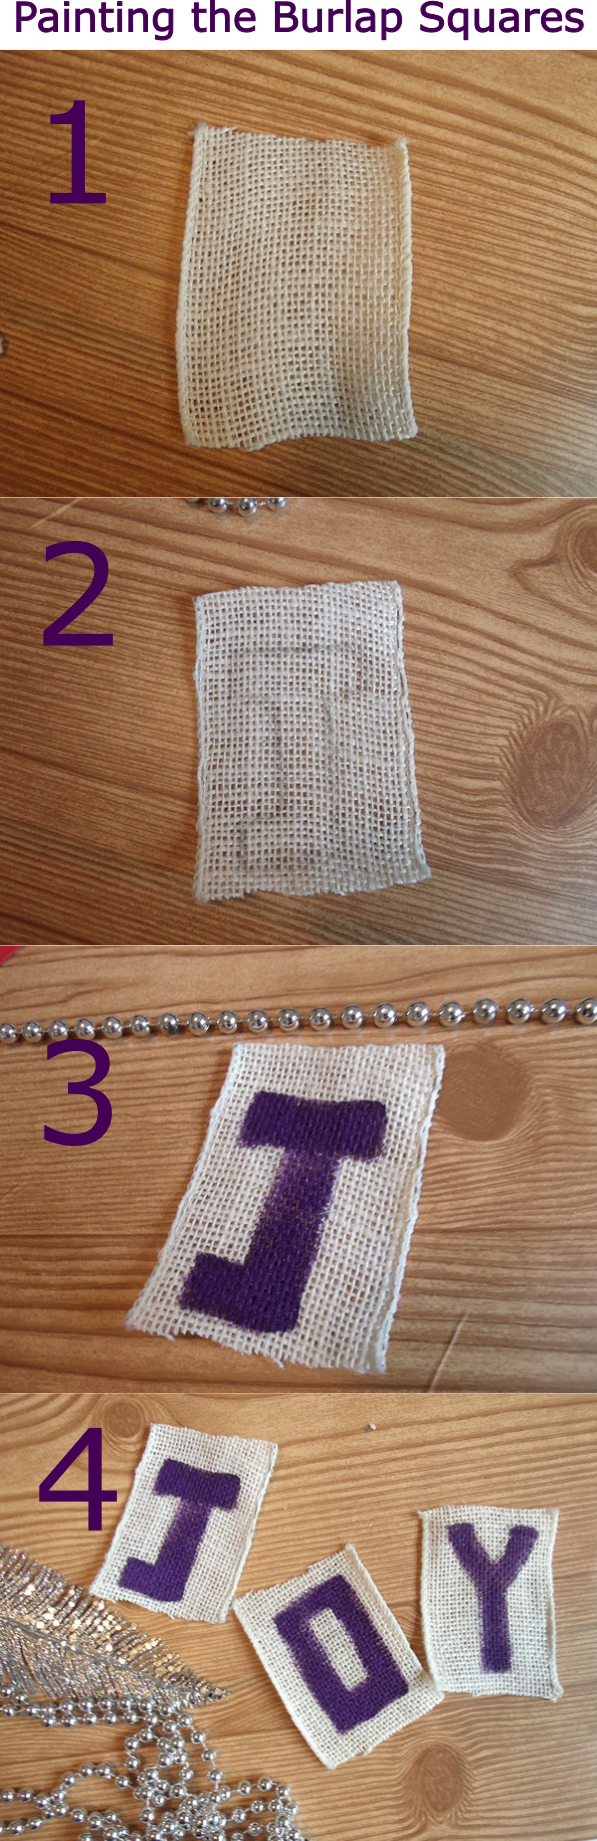 Creating a Message from Burlap Squares